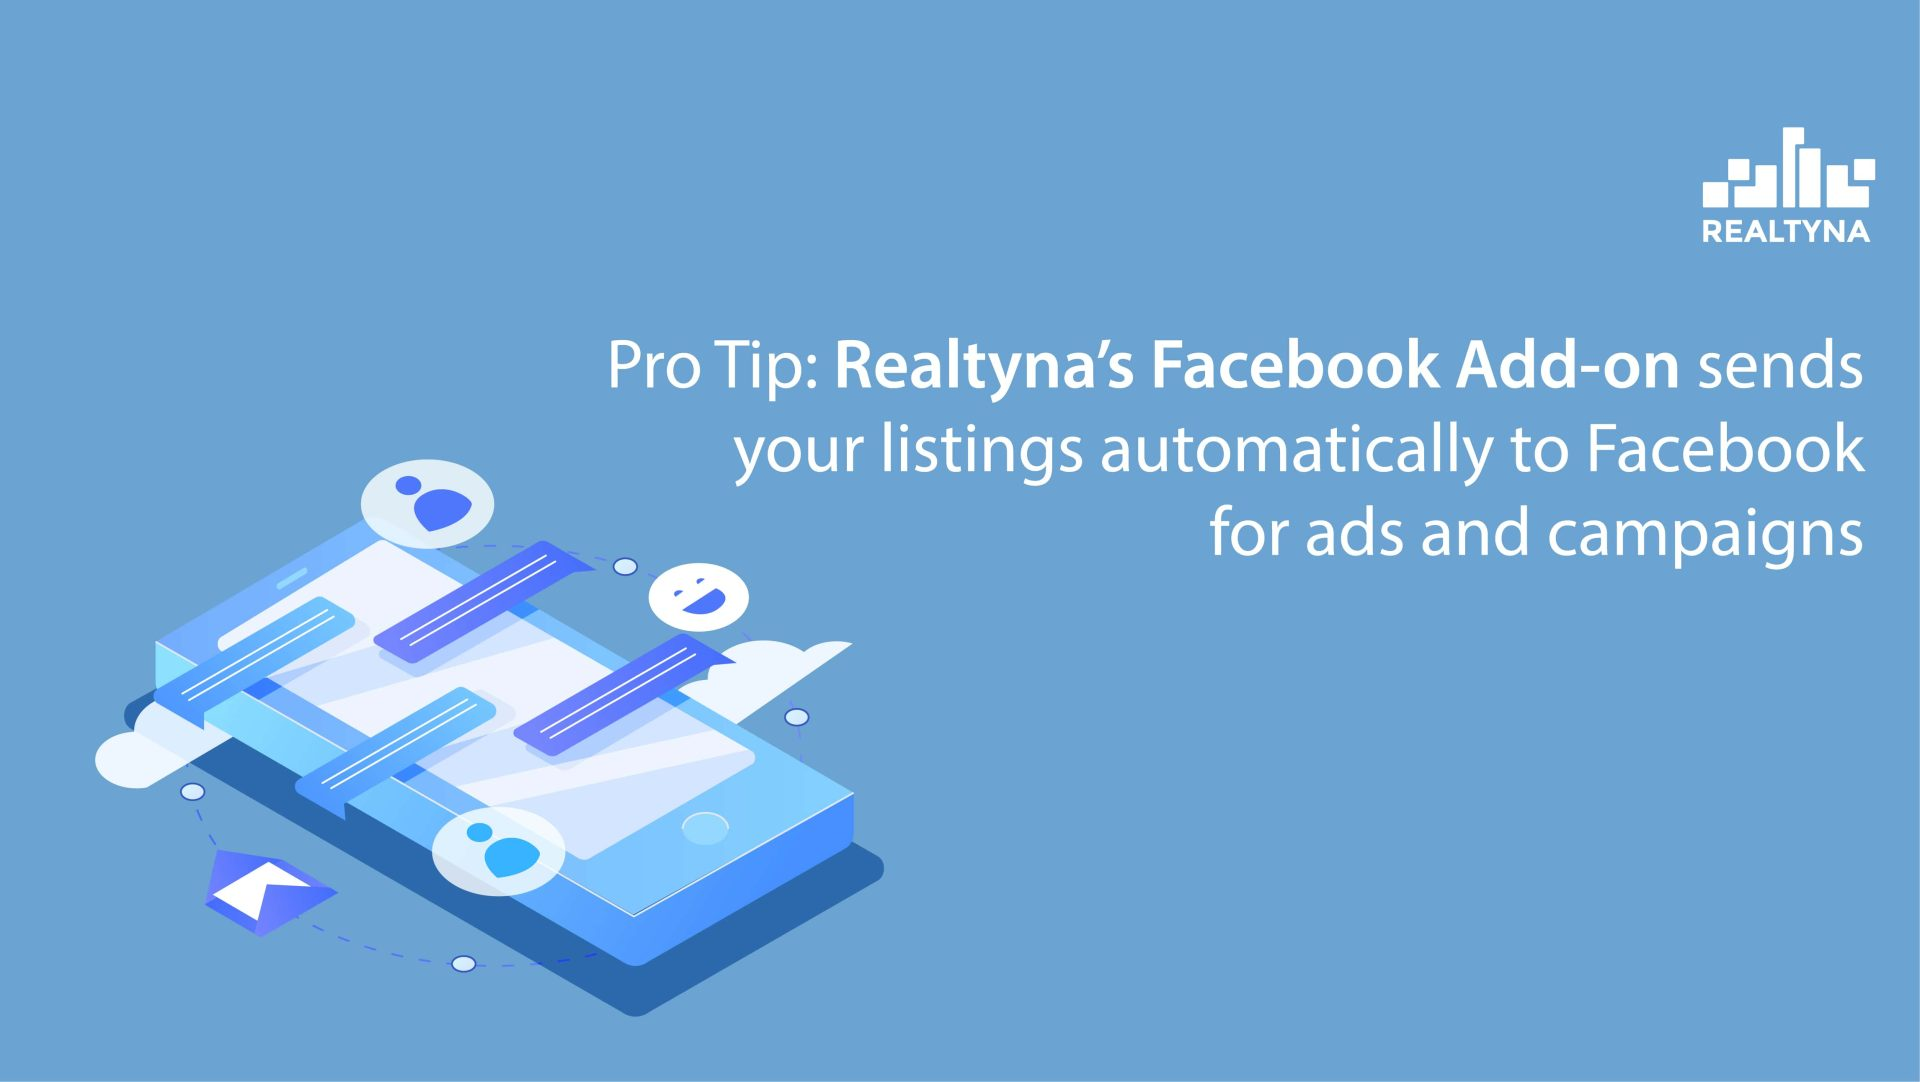 Realtyna's Facebook Add-on